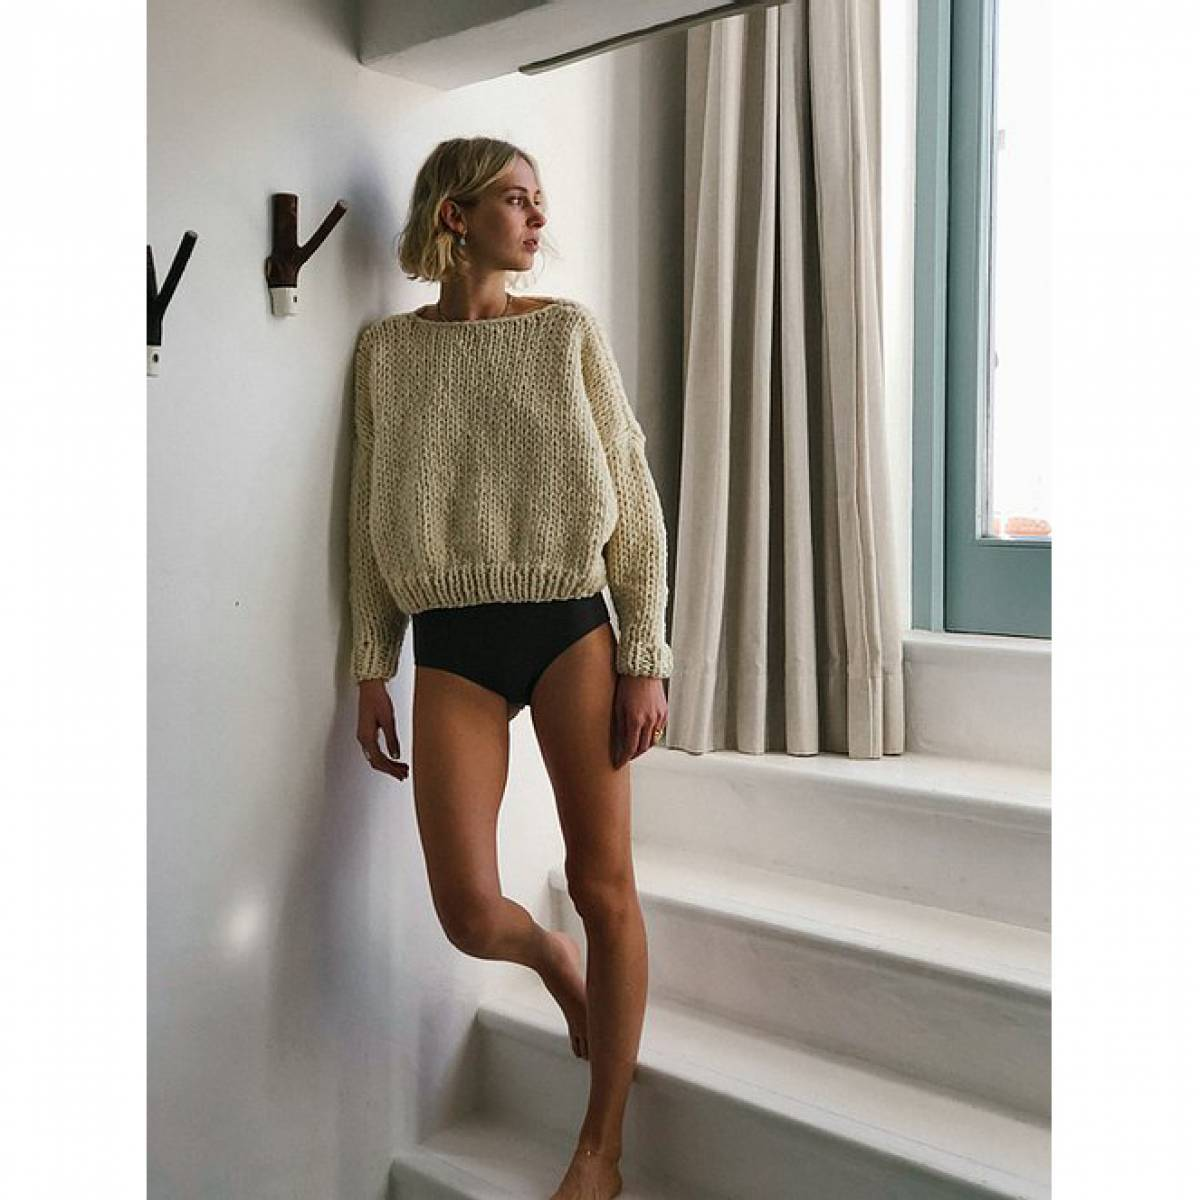 HAND KNITTED CATHERINA WOOL SWEATER CRUDO